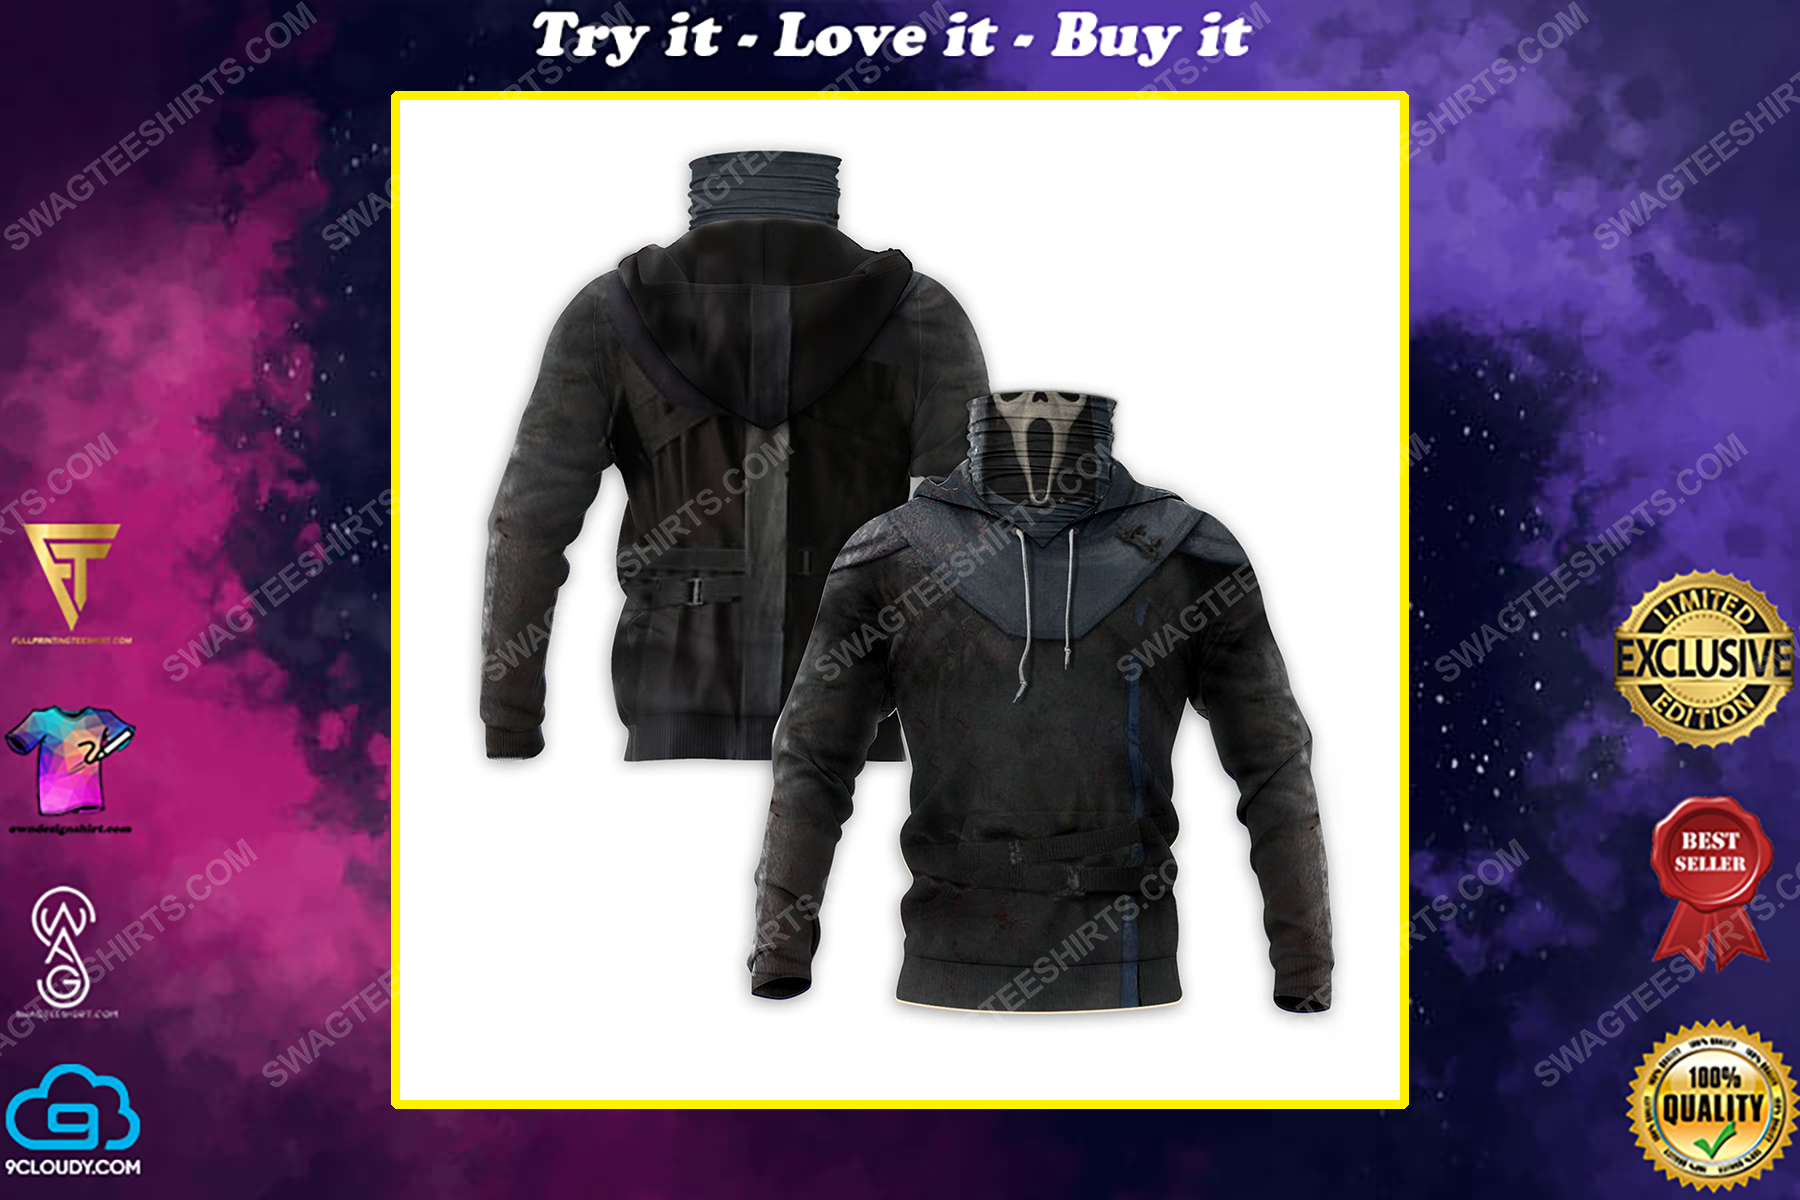 The scream ghost face for halloween full print mask hoodie